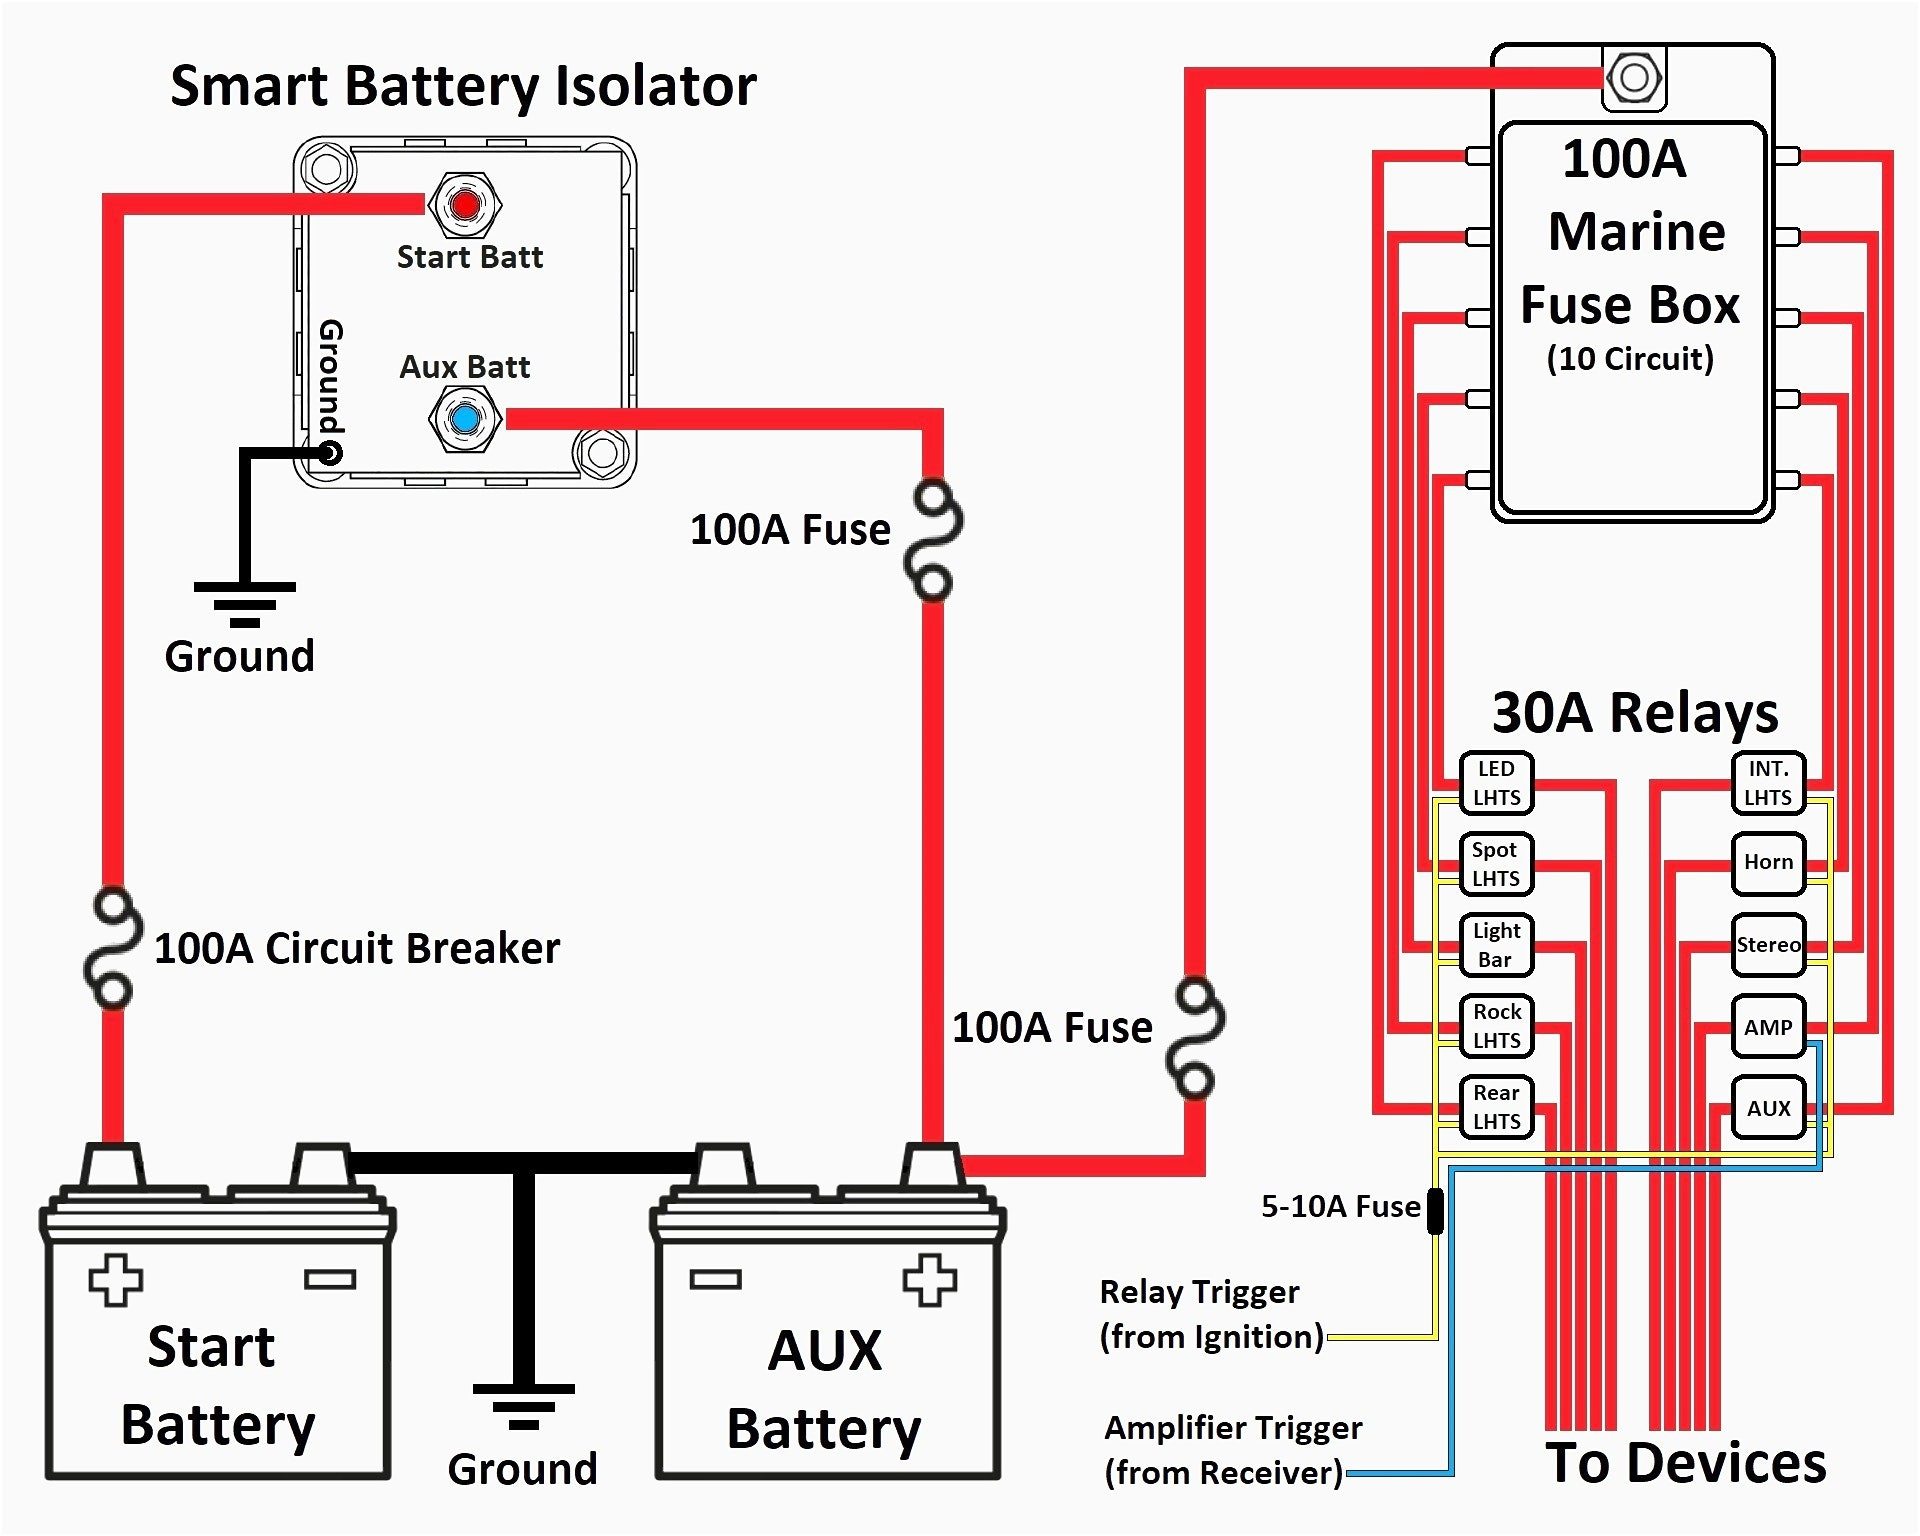 stinger battery isolator wiring diagram Download-Elegant Battery isolator Wiring Diagram Wiring 18-f